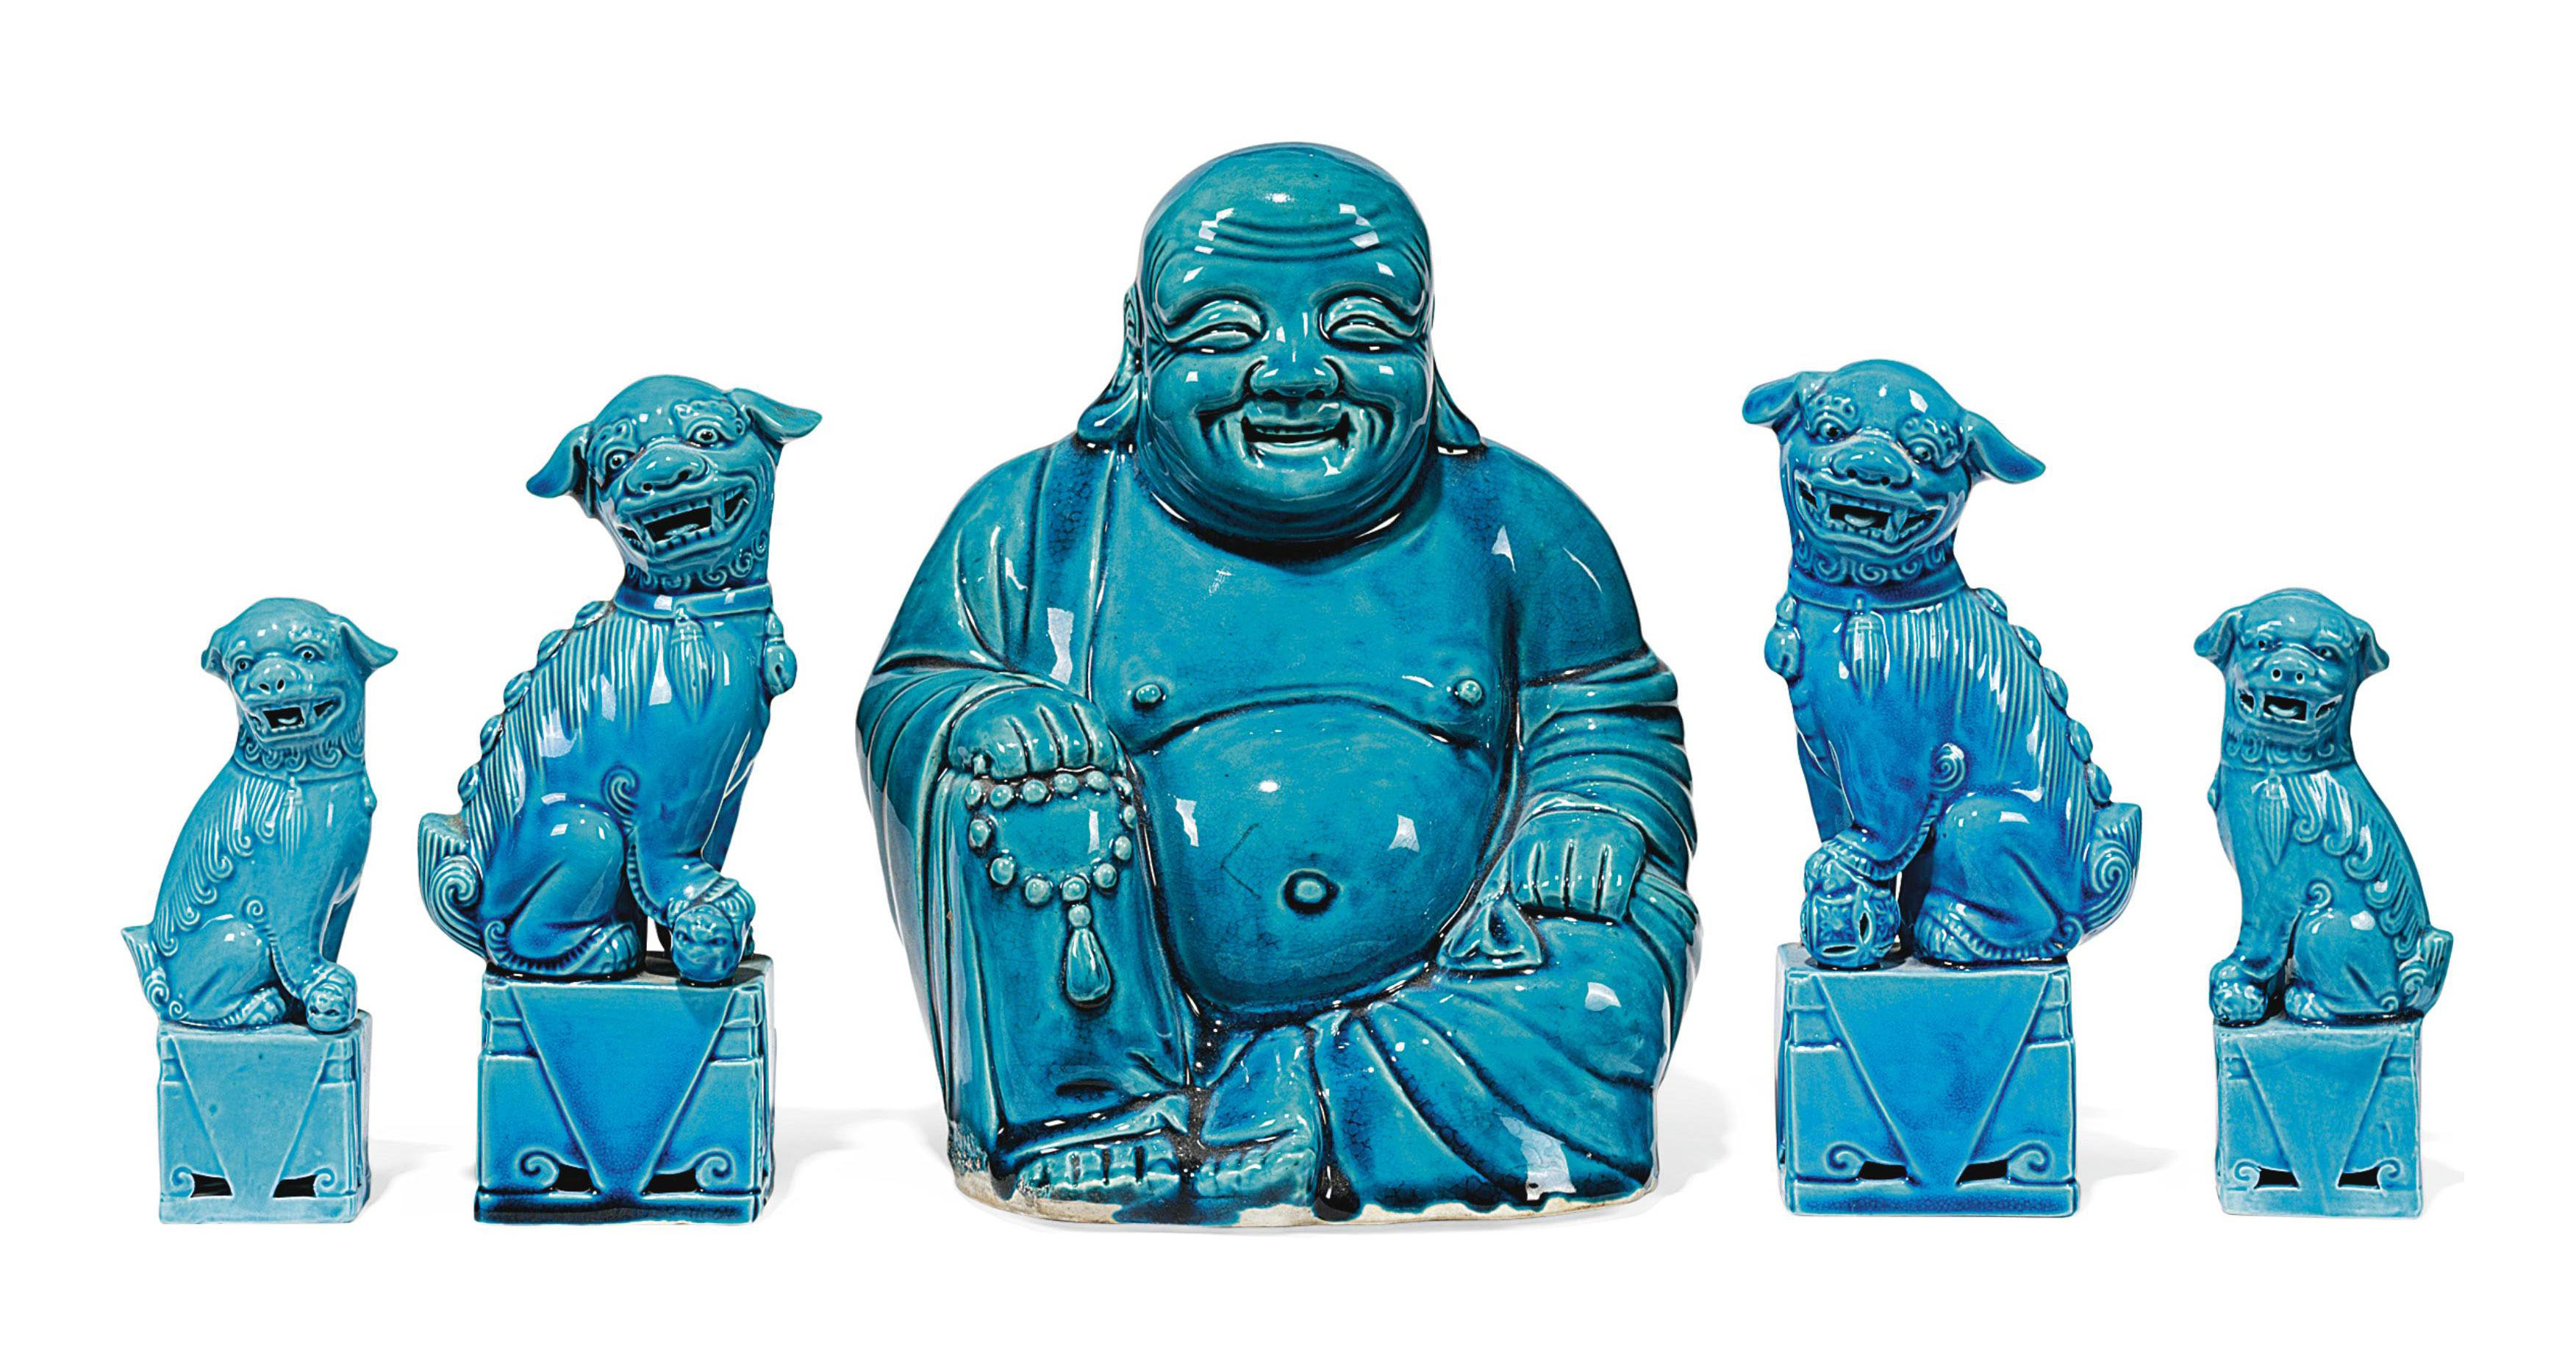 FOUR TURQUOISE-GLAZED MODELS OF BUDDHIST LIONS AND A FIGURE OF BUDAI